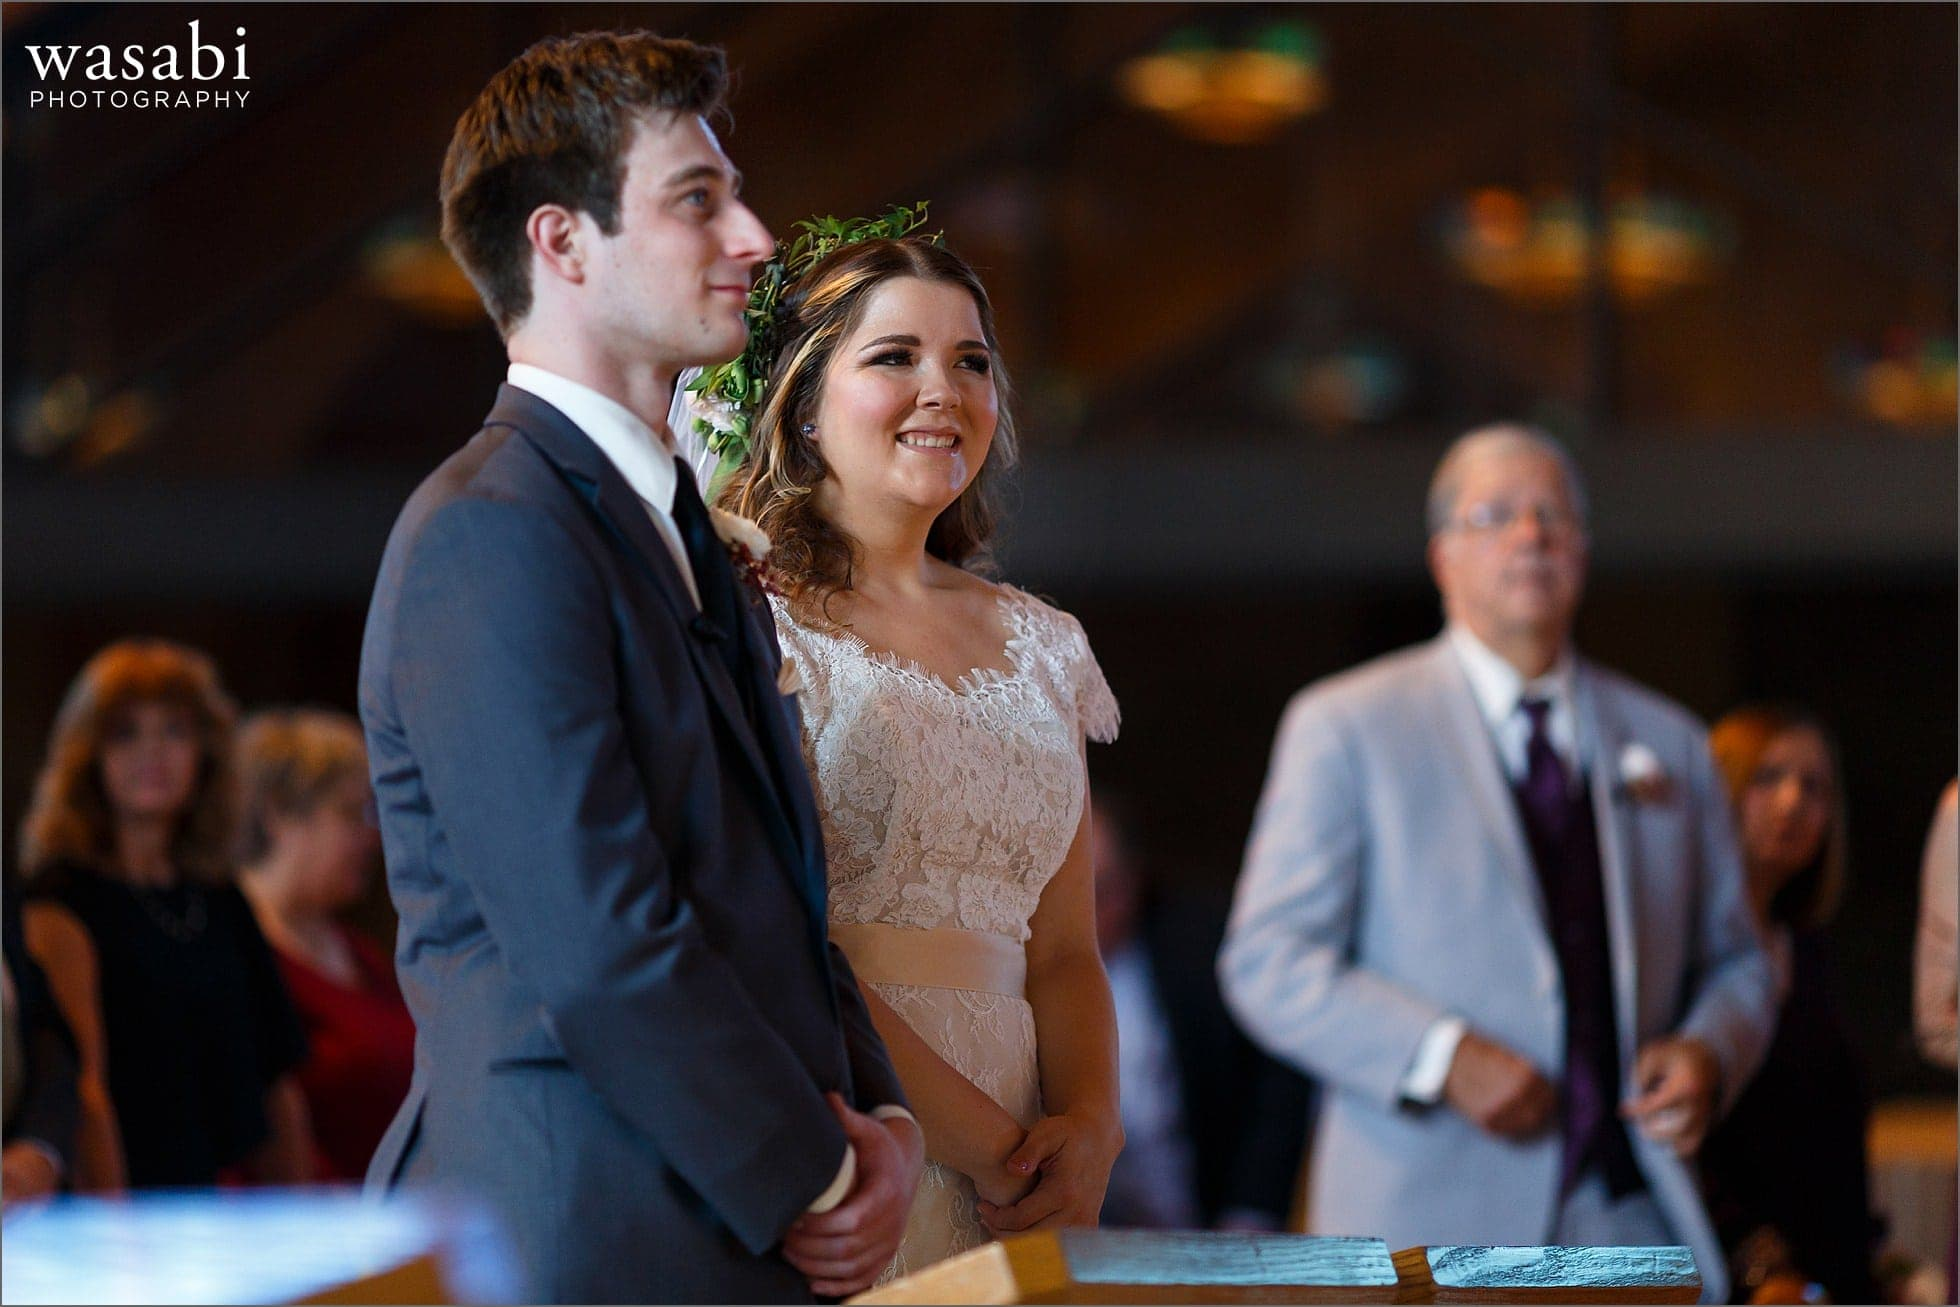 bride and groom smile during their wedding ceremony at Sacred Heart Catholic Church in Palos Hills